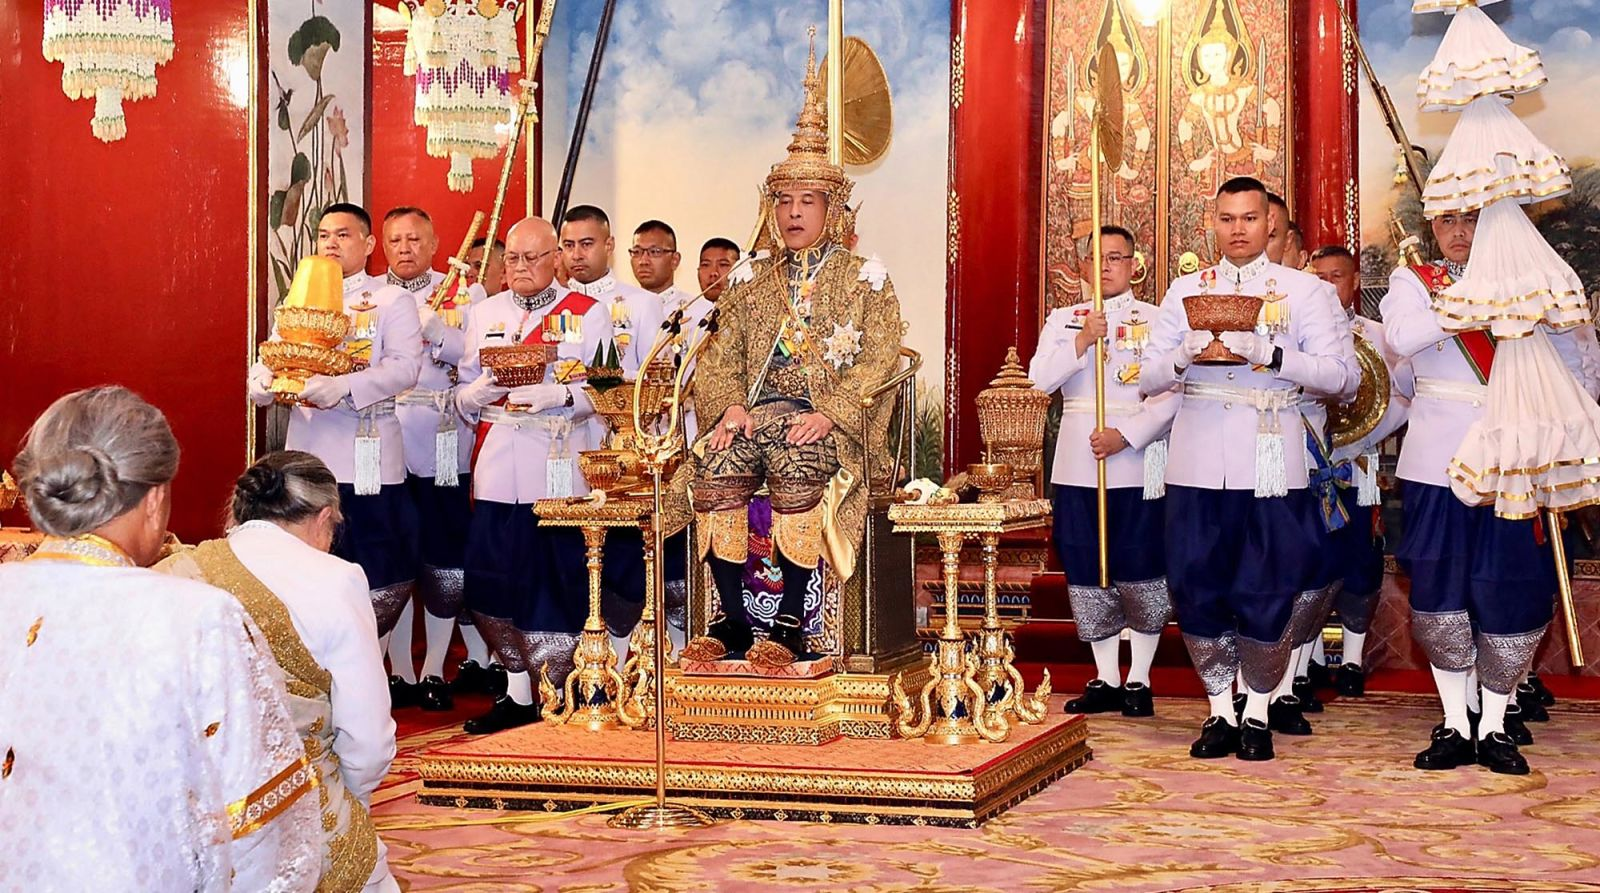 Thailand Officially Crowns King Maha Vajiralongkorn In An Elaborate Three-Day Ceremony